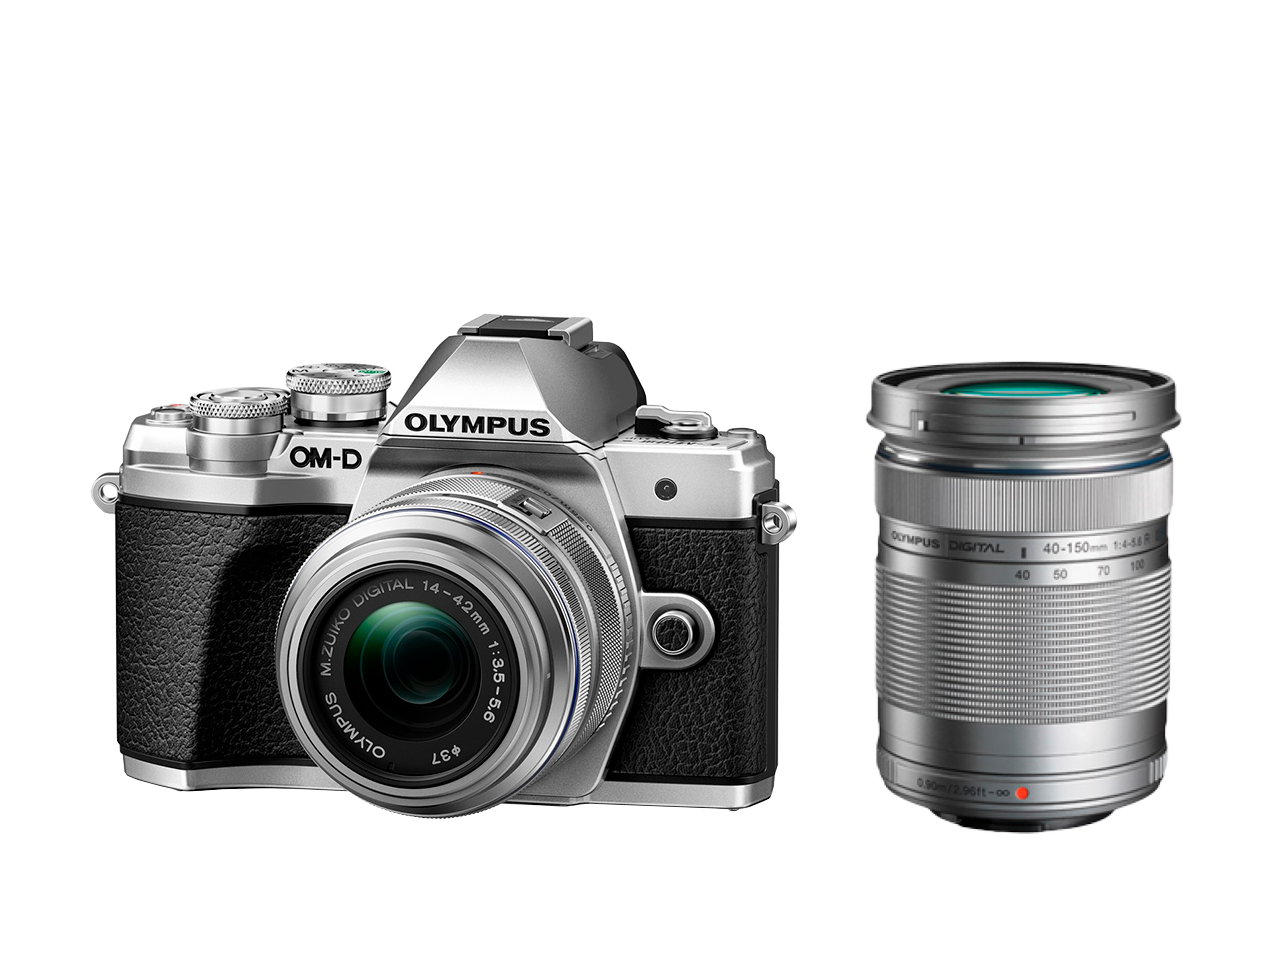 Фотоаппарат Olympus OM-D E-M10 Mark III 14-42IIR Double Zoom Kit с объективами 14-42IIR и 40-150mm серебристый (V207071SE010) фото